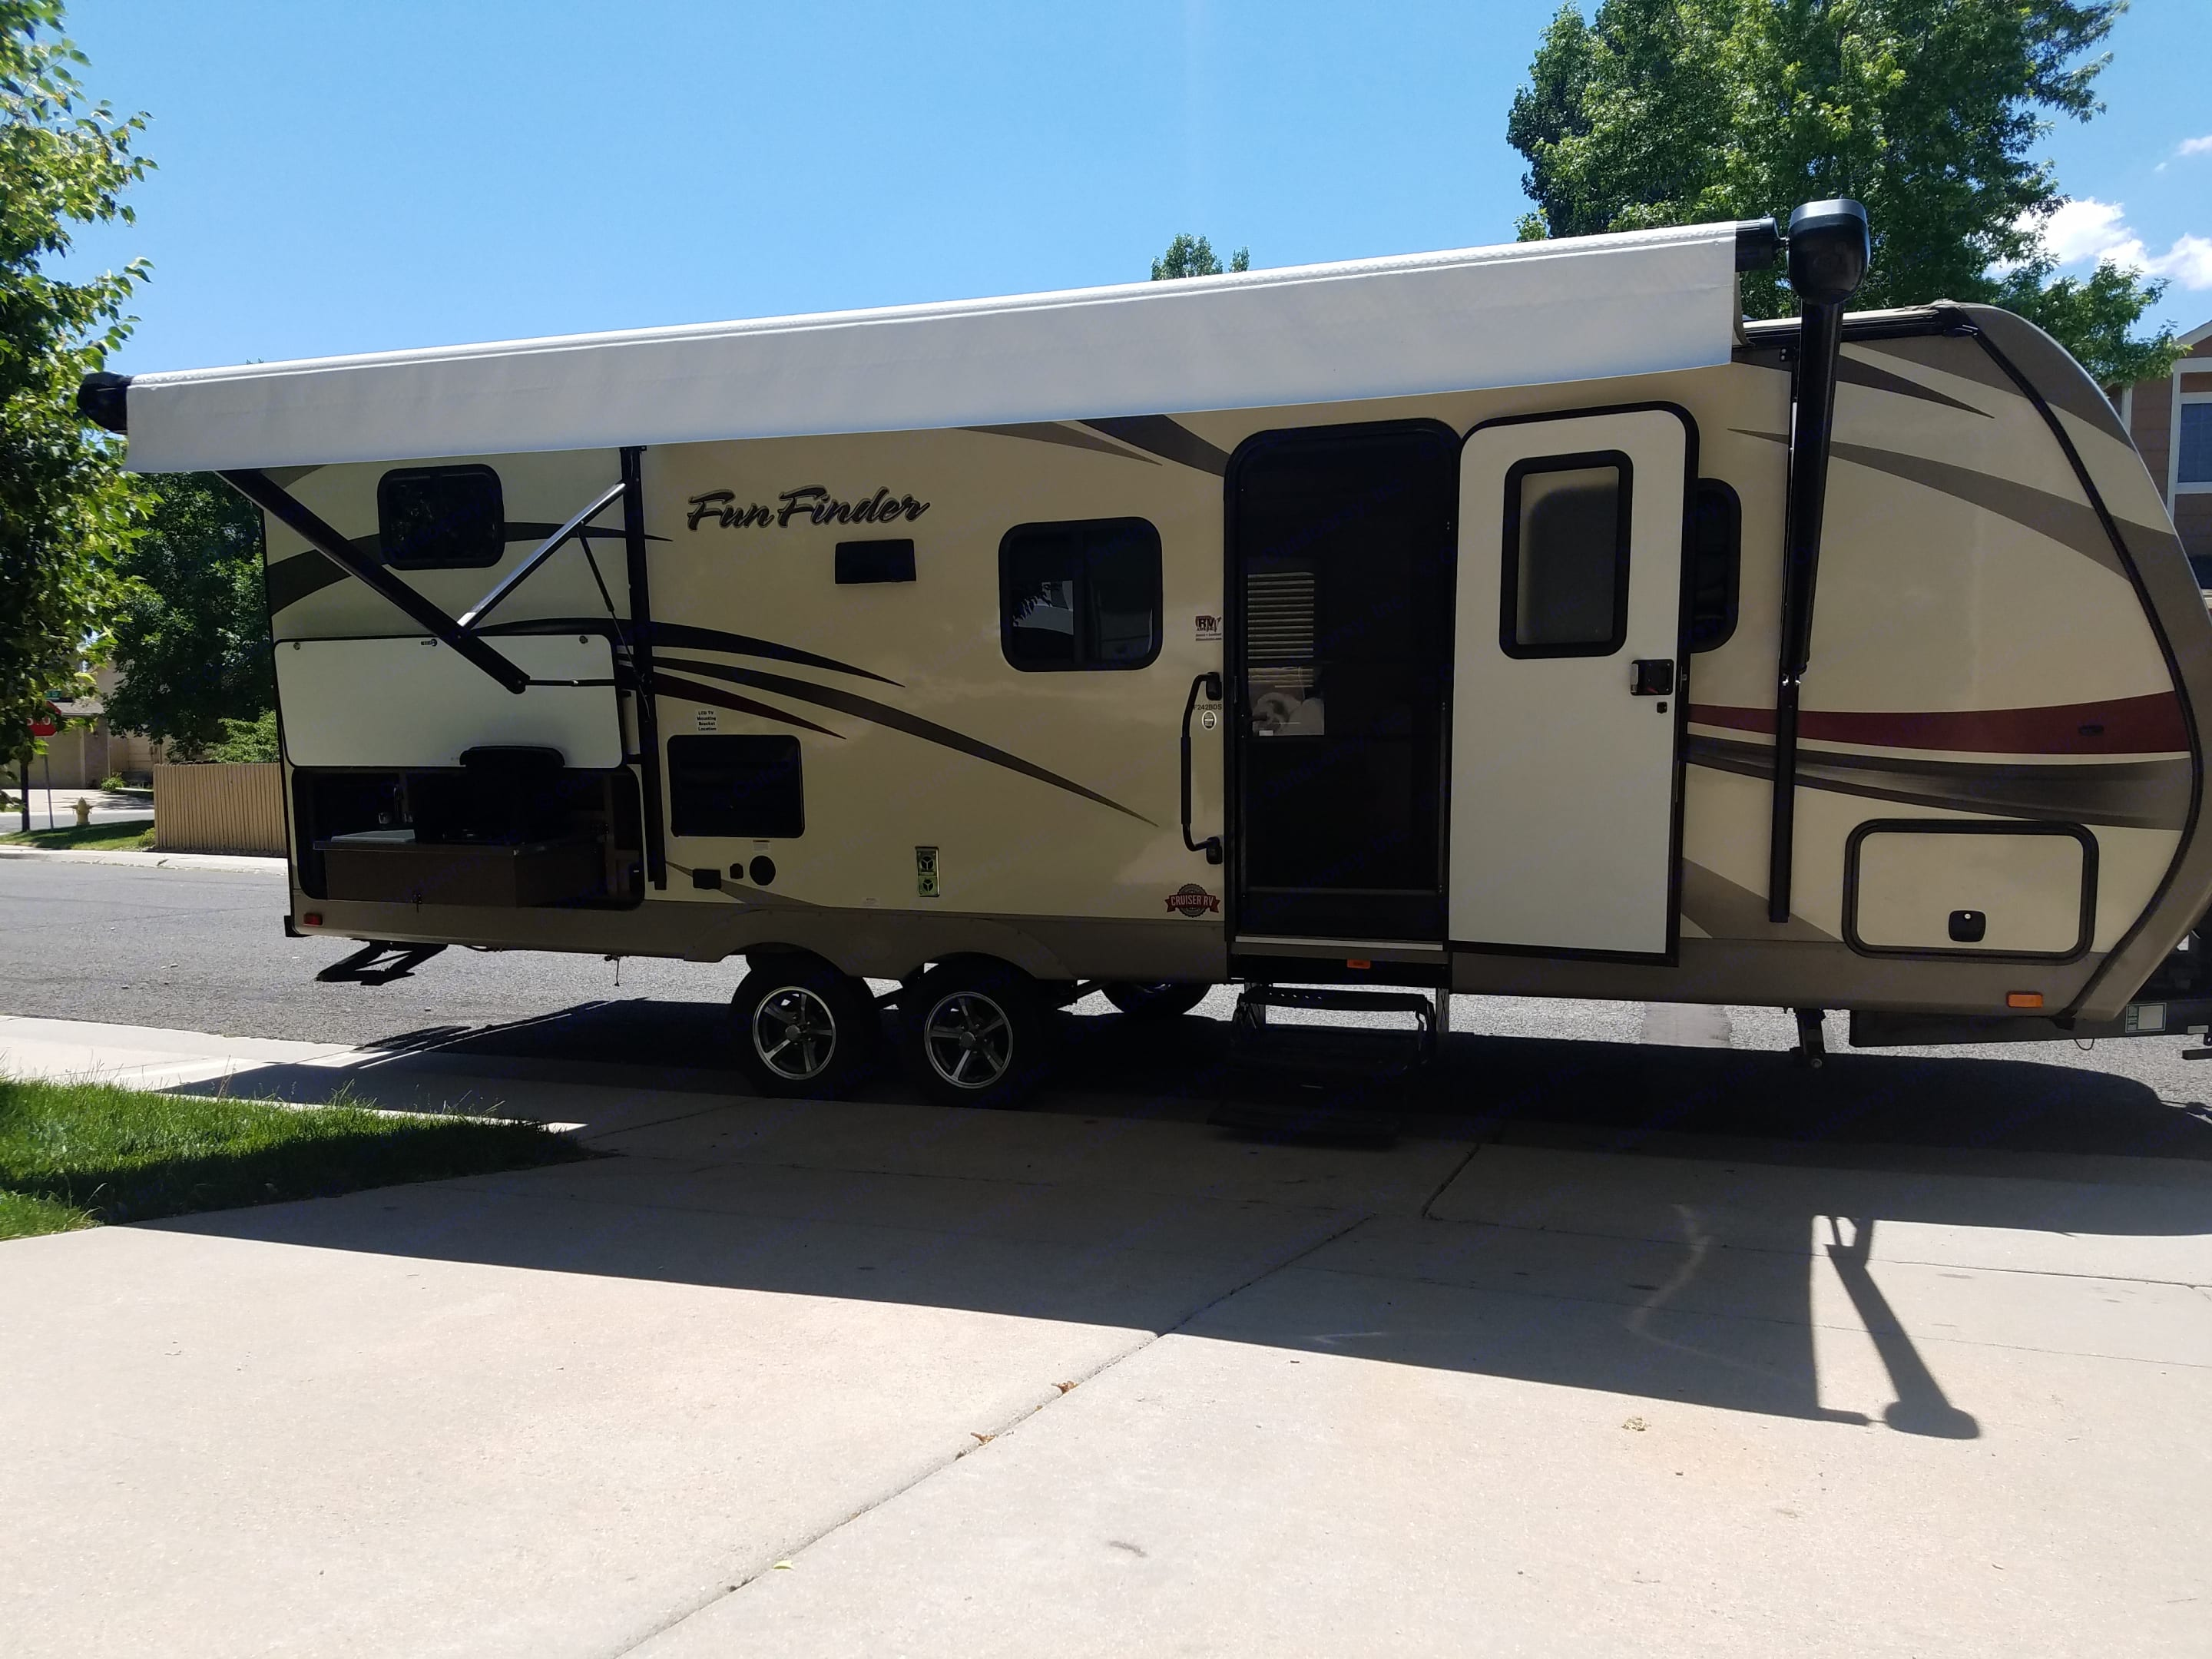 Retractable awning and outside kitchen. Cruiser Rv Corp Fun Finder 2016